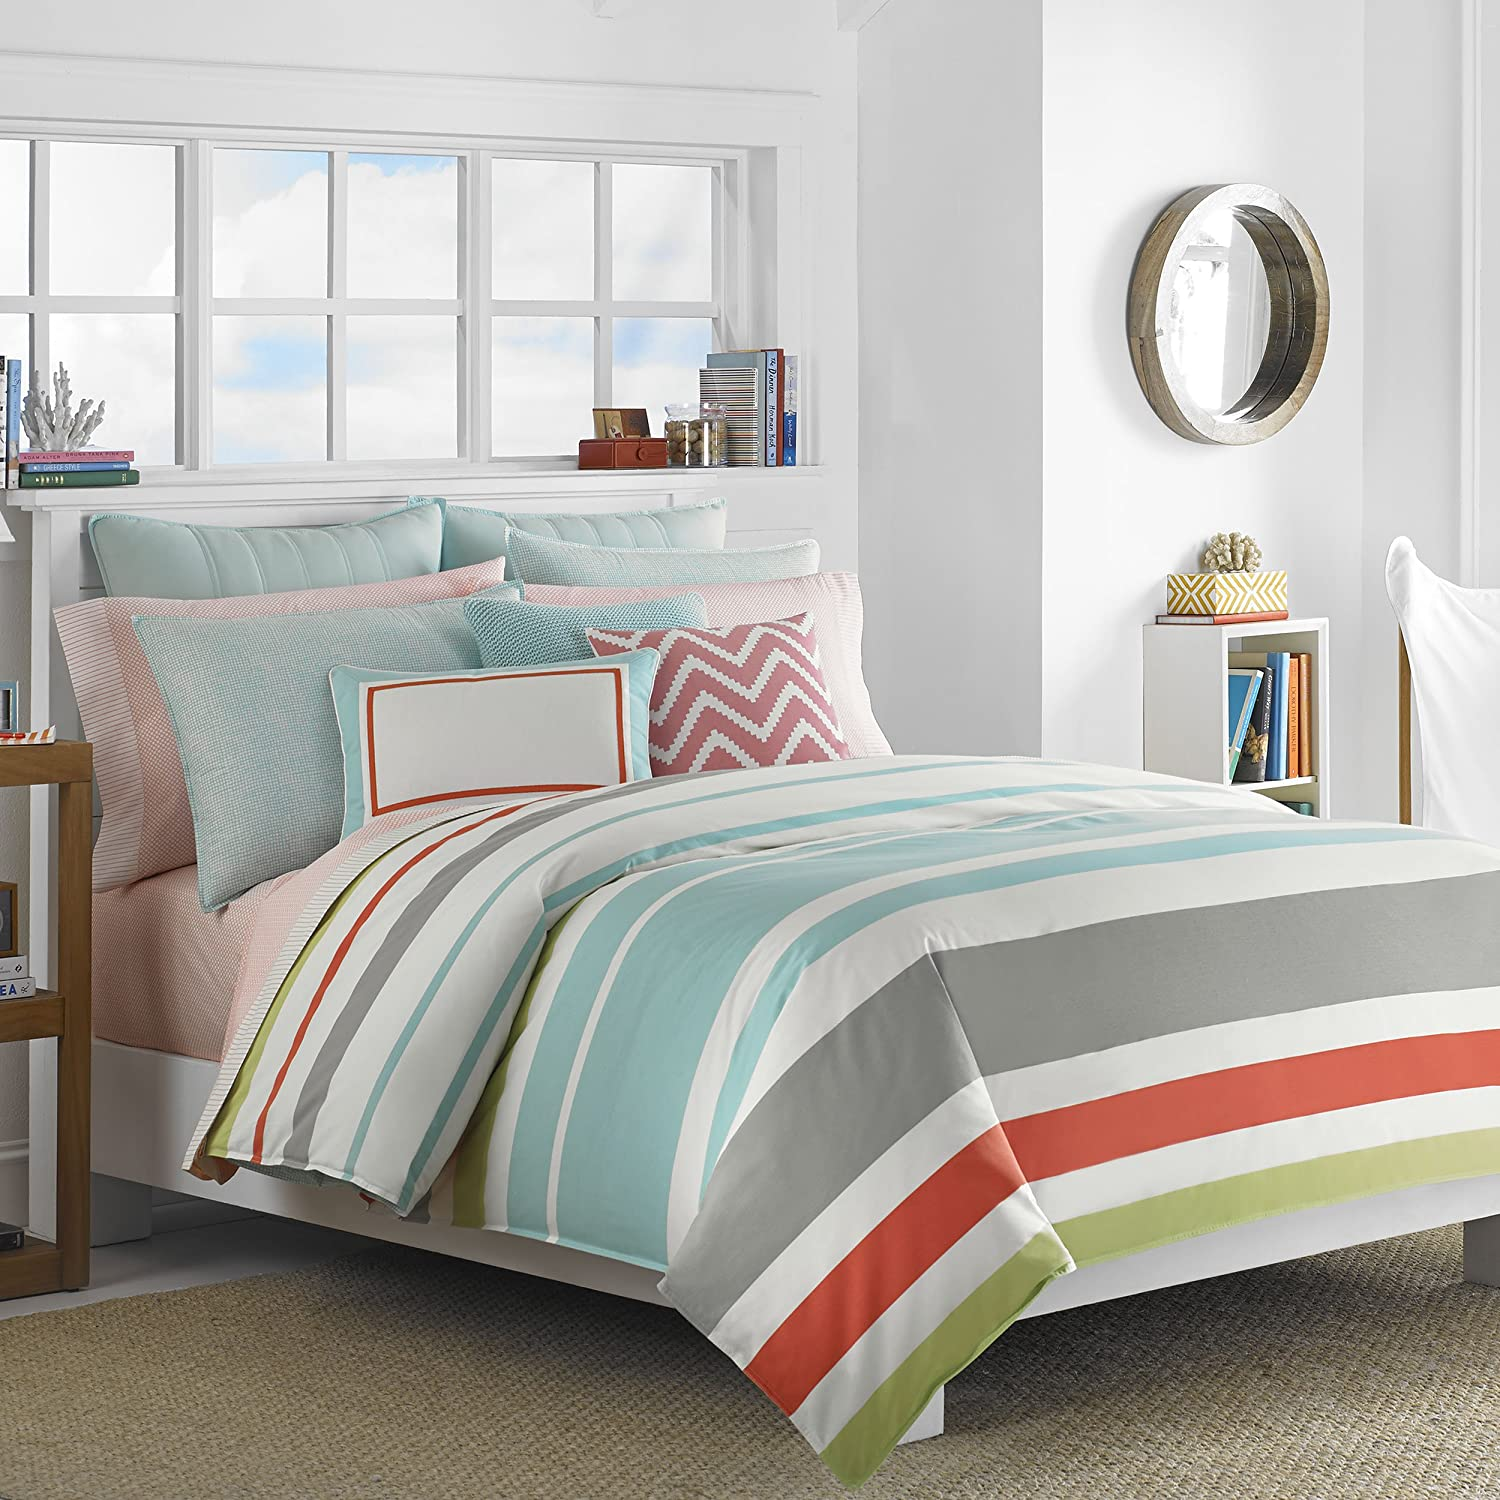 outlet nautica sets on sale reviews comforter xl set interesting amazon comforters nordstrom quilts bedding twin tideway queen clearance sham